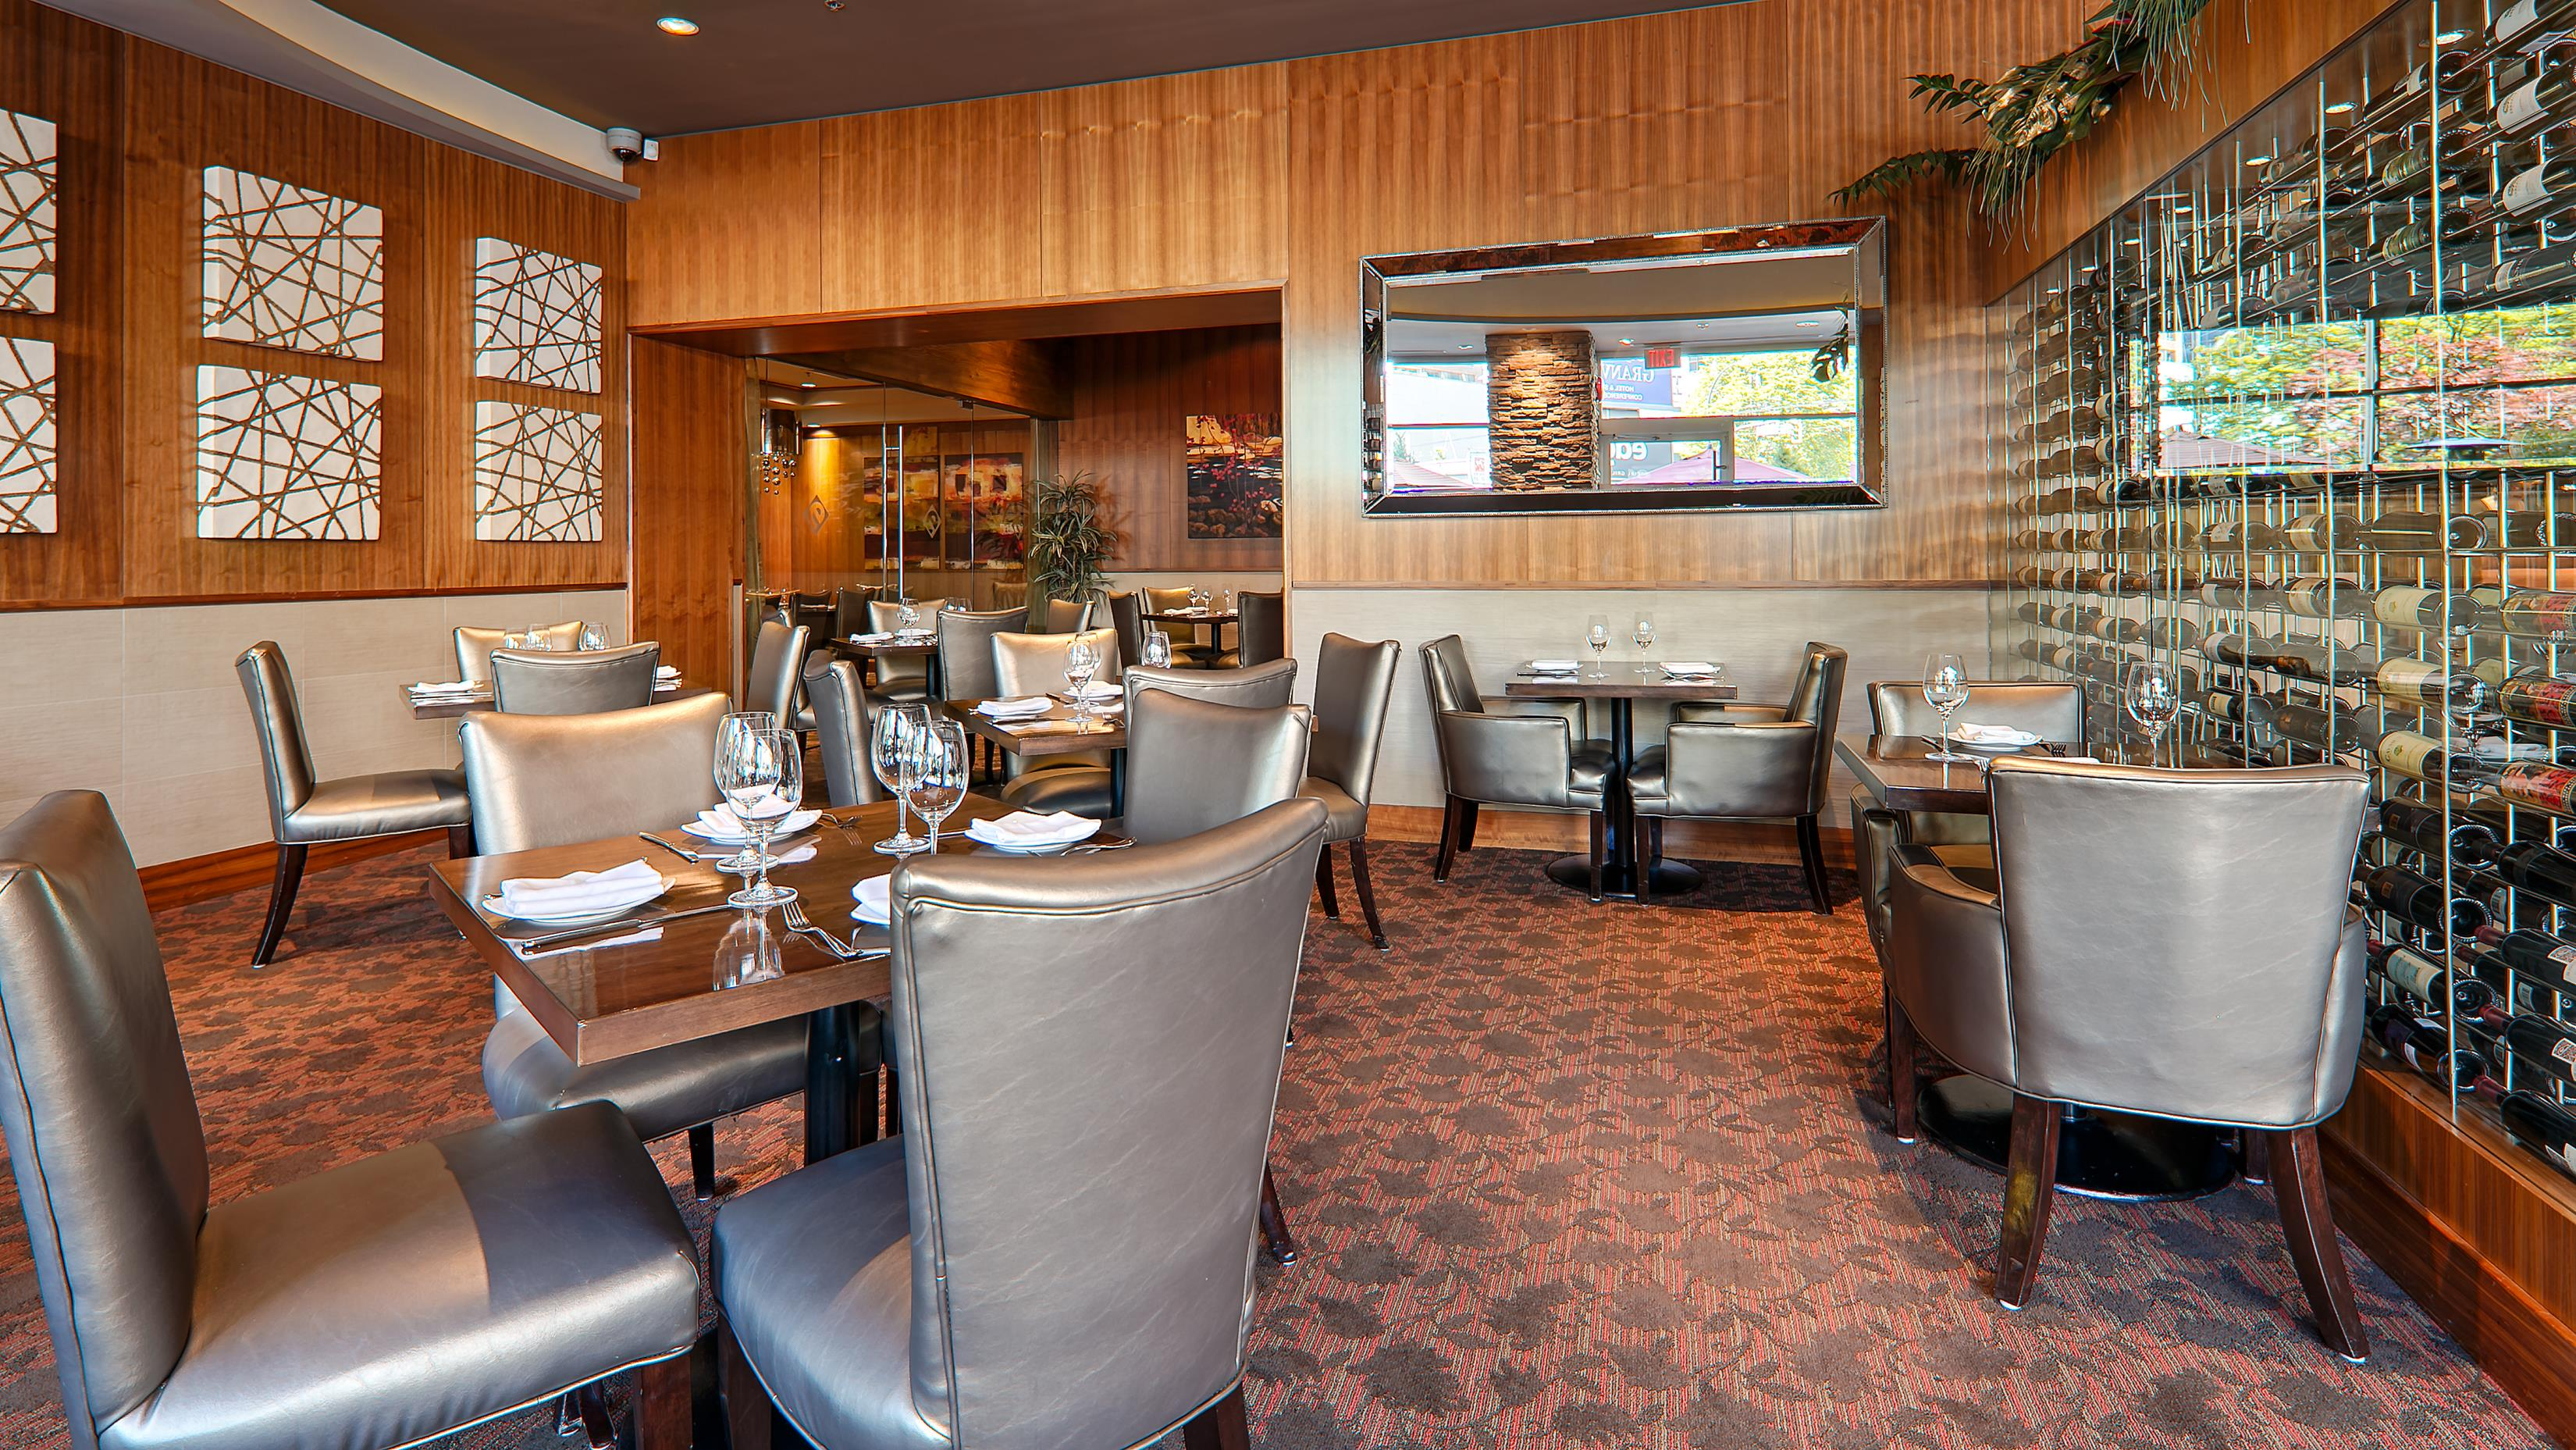 Best Western Plus Chateau Granville Hotel & Suites & Conference Ctr. in Vancouver: On-site Restaurant